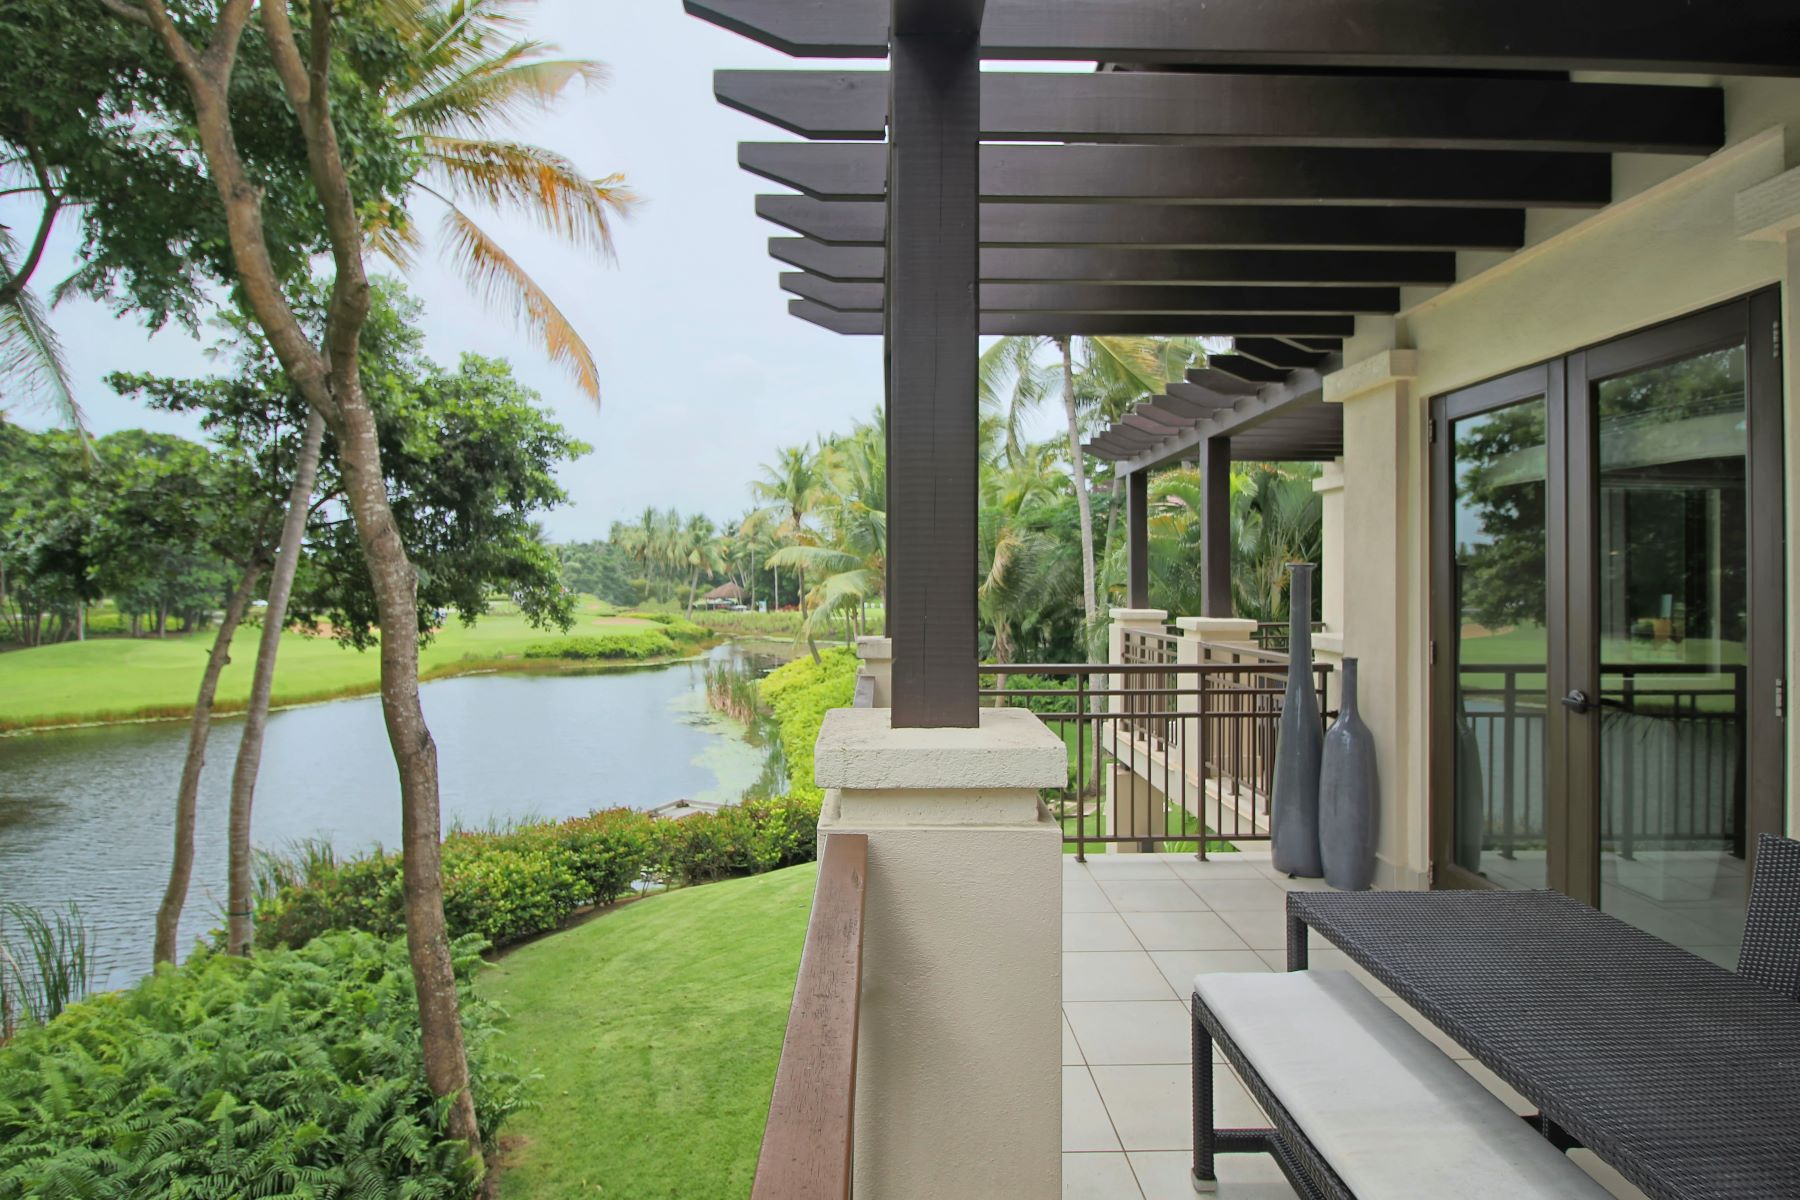 Additional photo for property listing at Lakefront with Golf Views Villa State Rd. 187, Km. 4.2 Apt. 1206 Bahia Beach, Puerto Rico 00745 Porto Rico